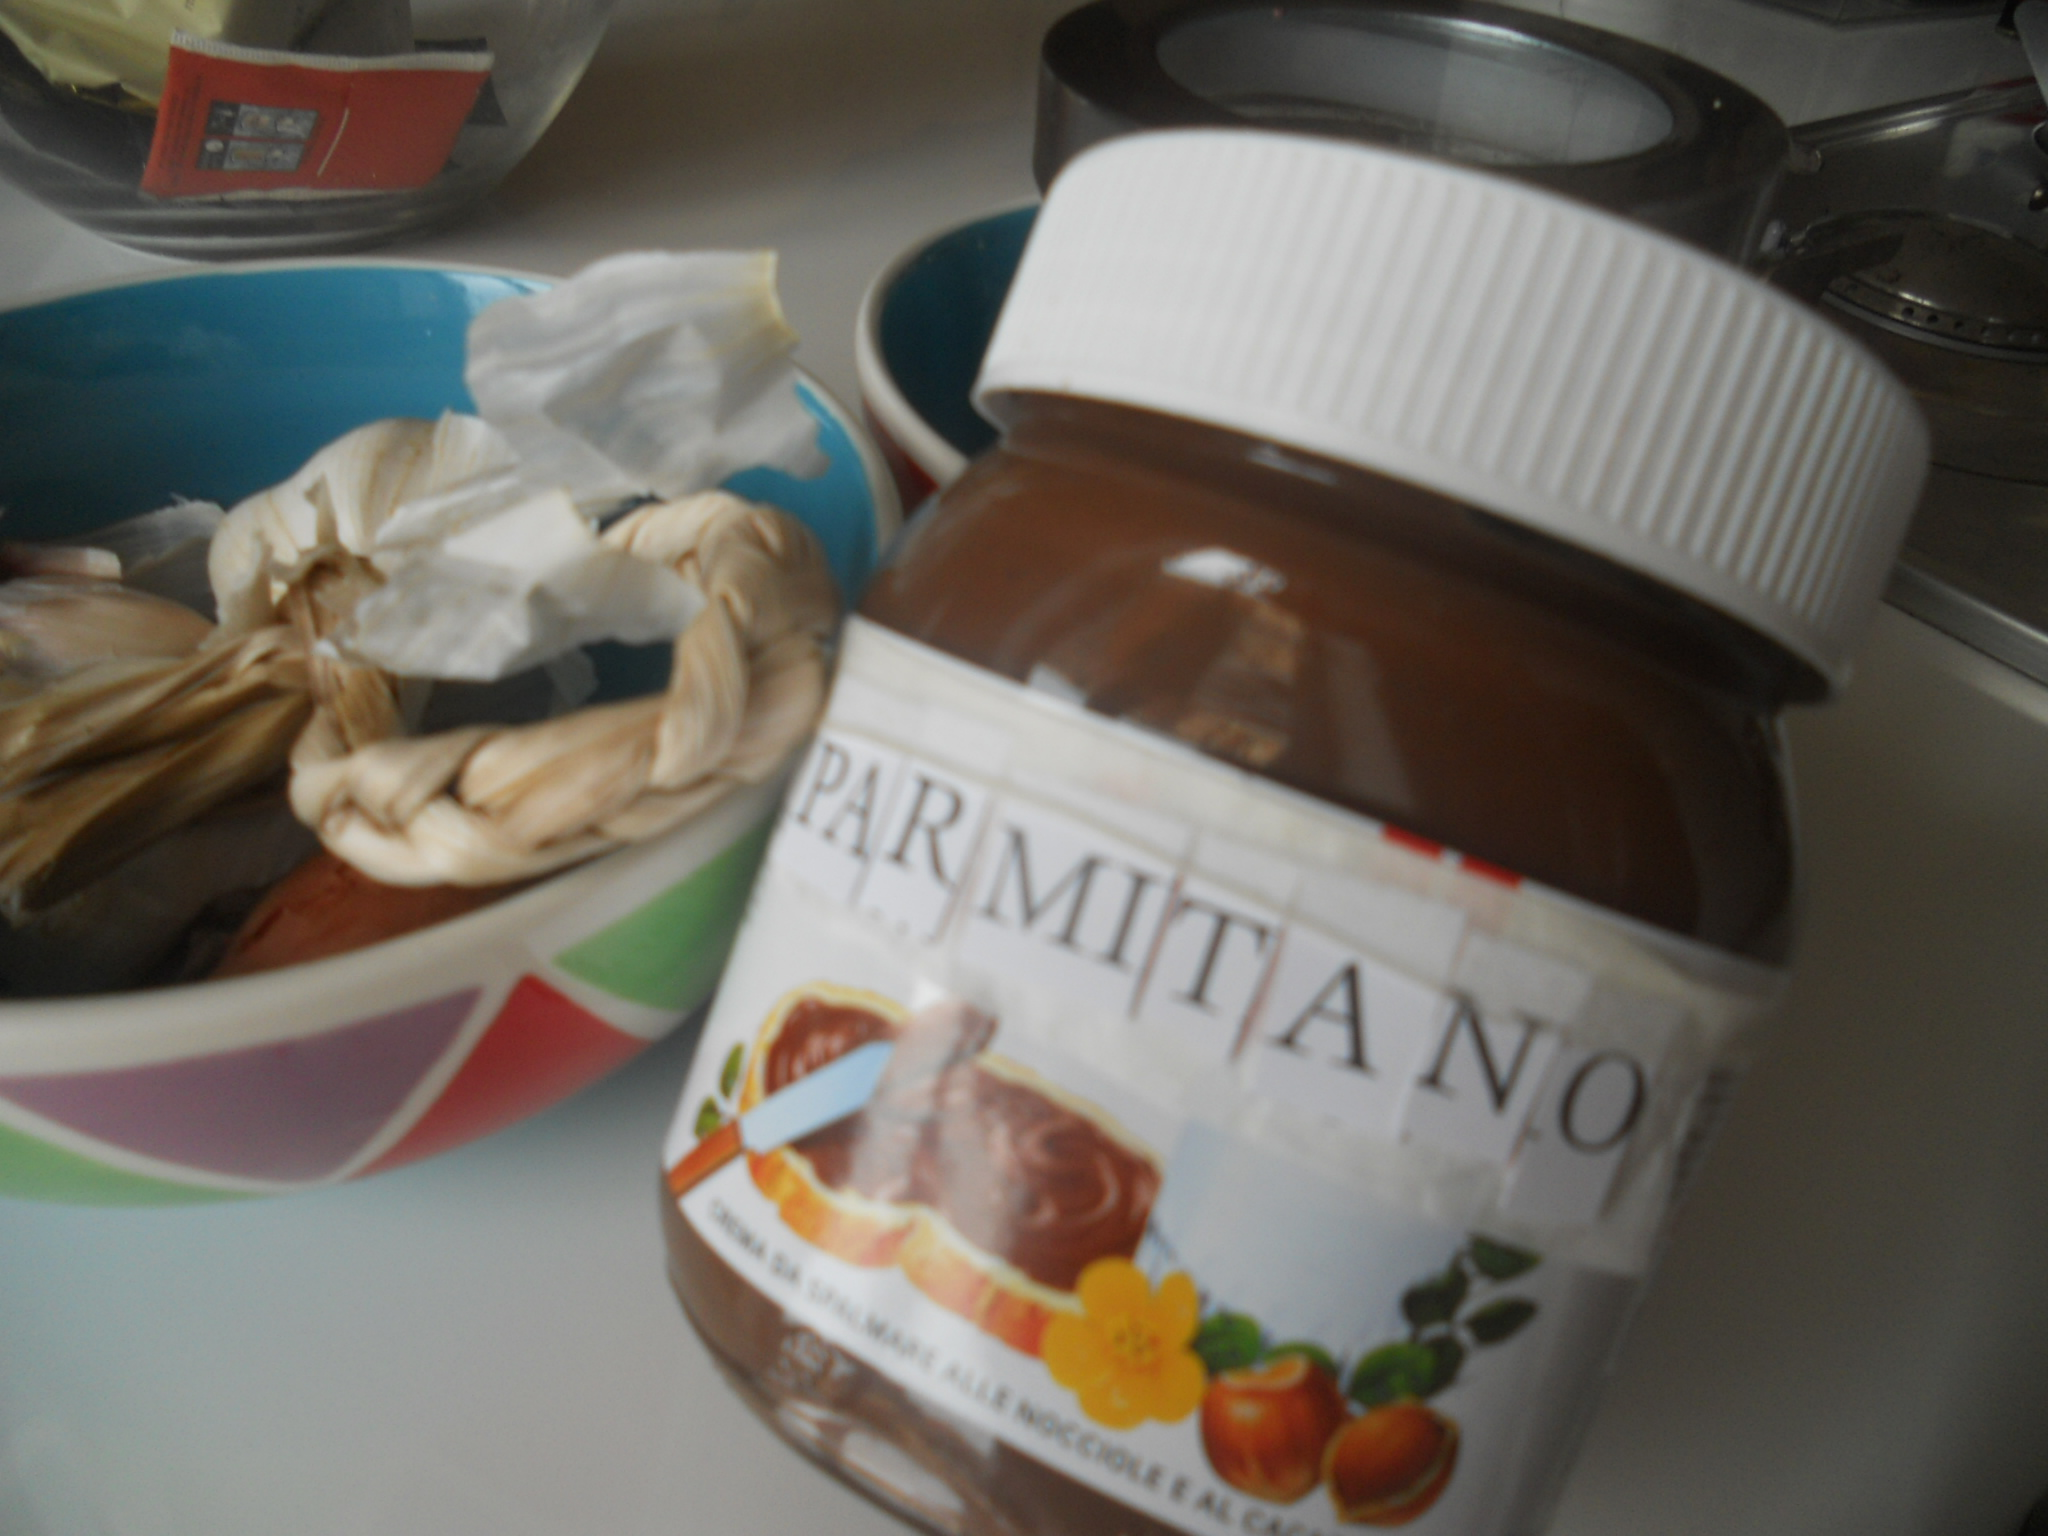 Nutella Limited Edition for Luca Parmitano's Fans club!!